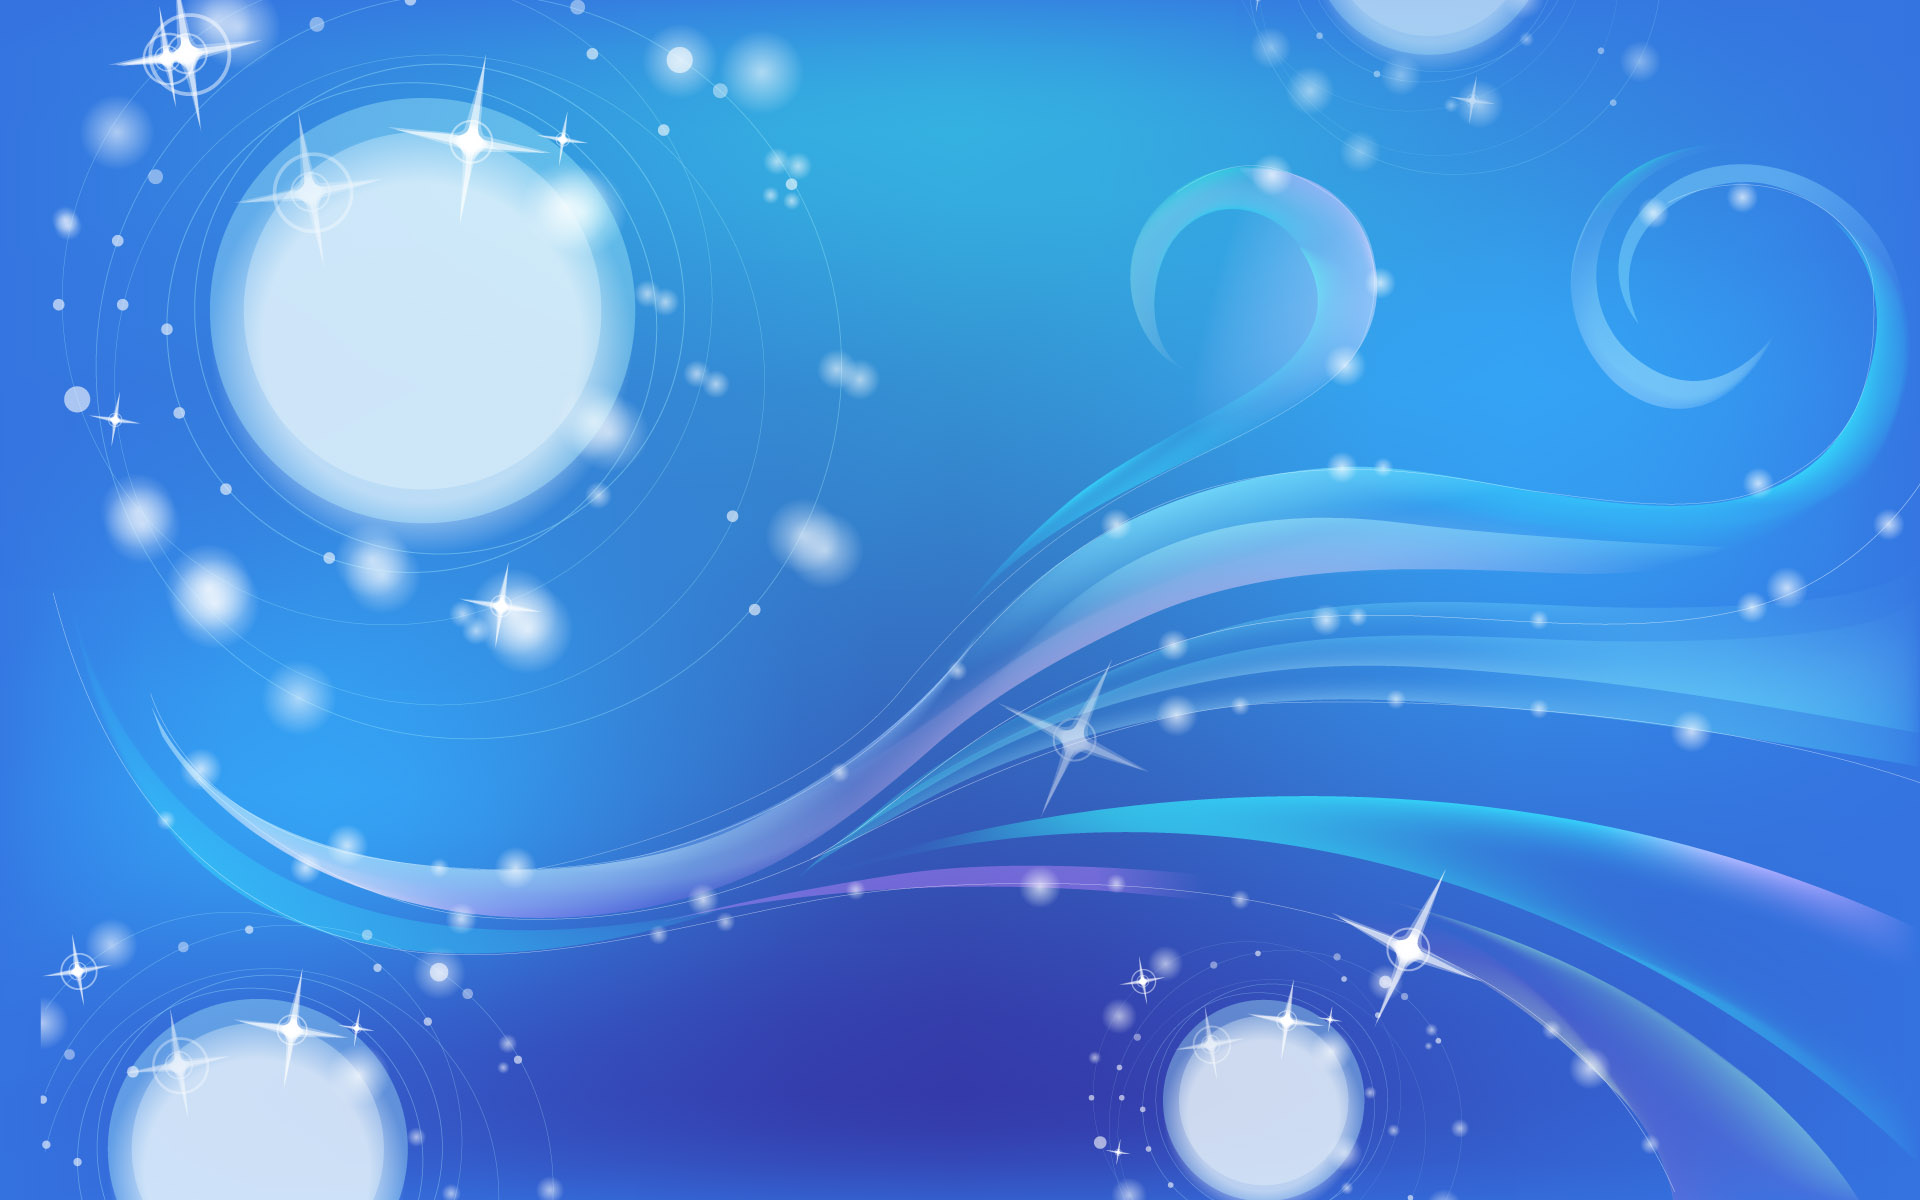 Colorful high-resolution background 24571